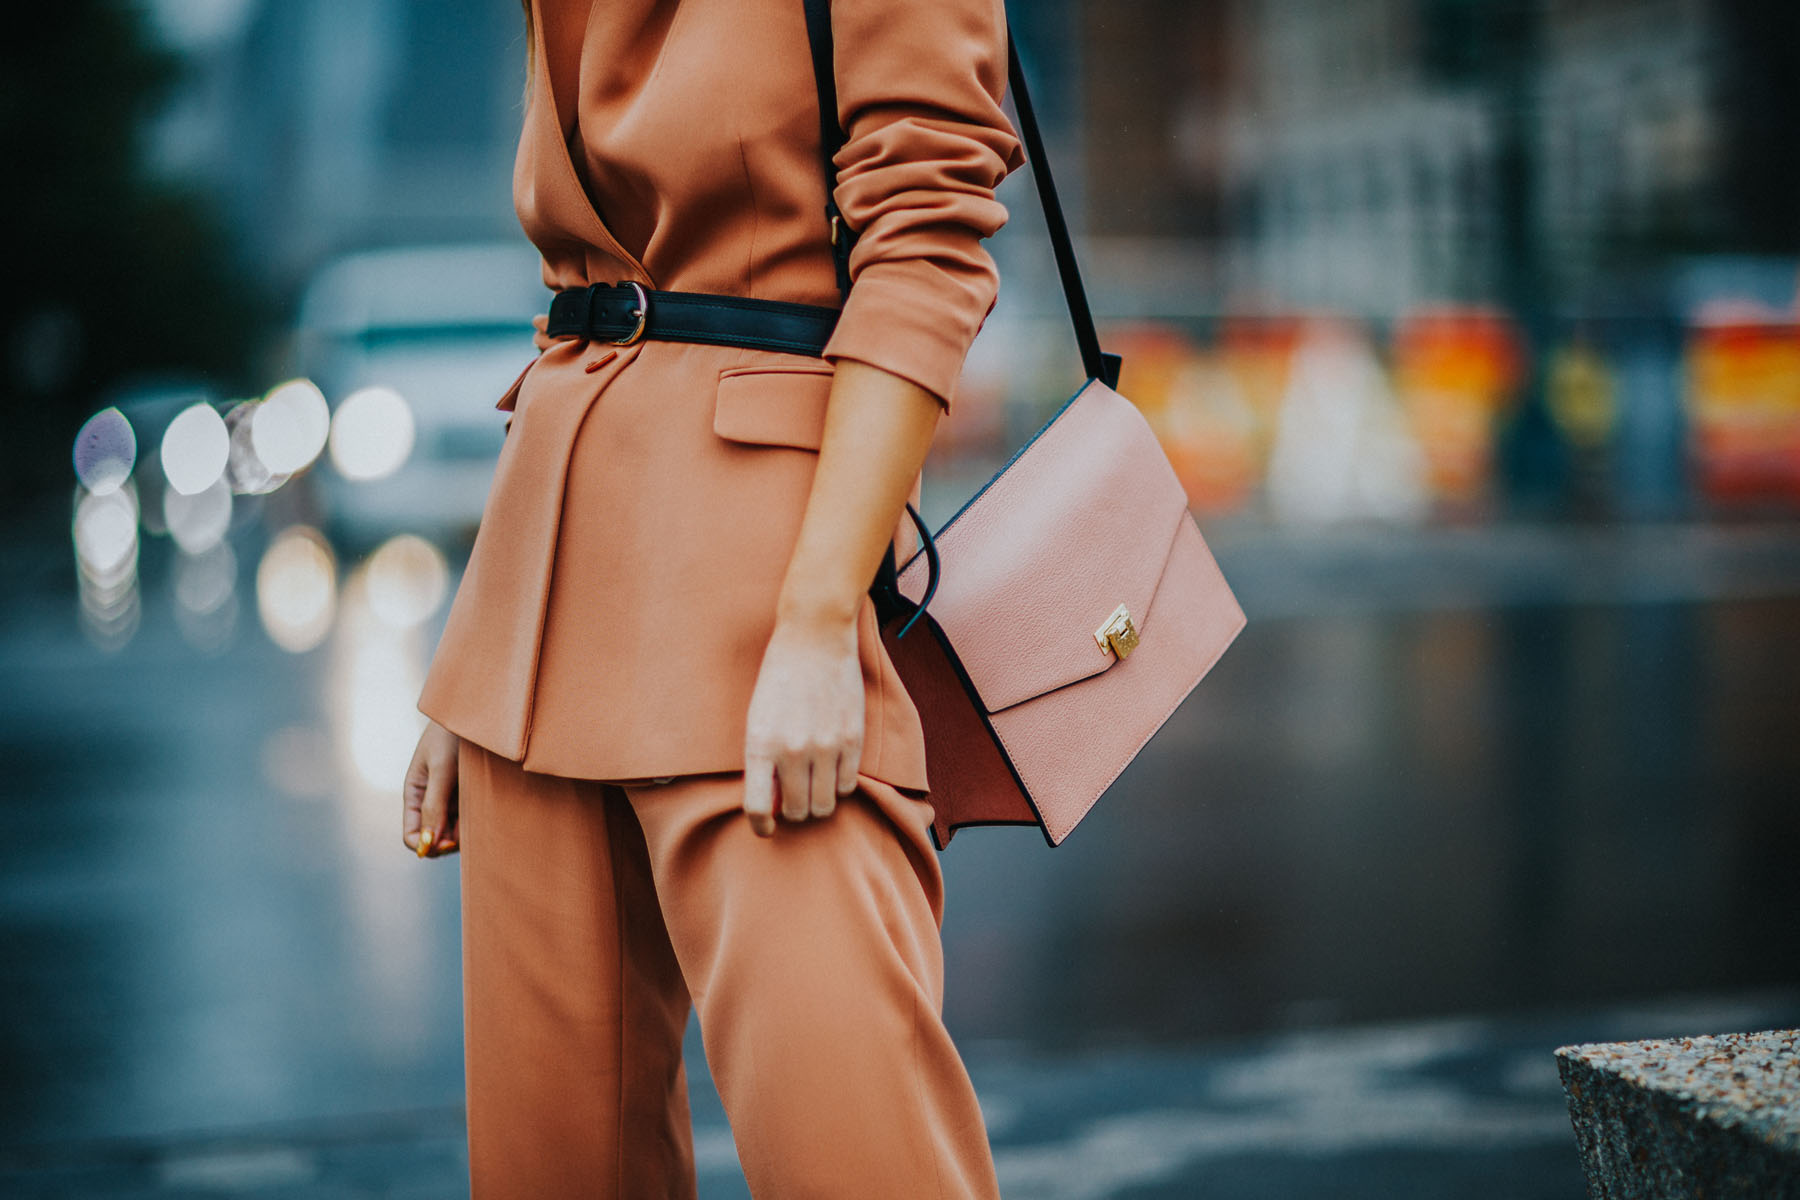 what to wear to a job interview - Reiss Pant Suit, Belted Blazer, Tan suit, suits for women // Notjessfashion.com